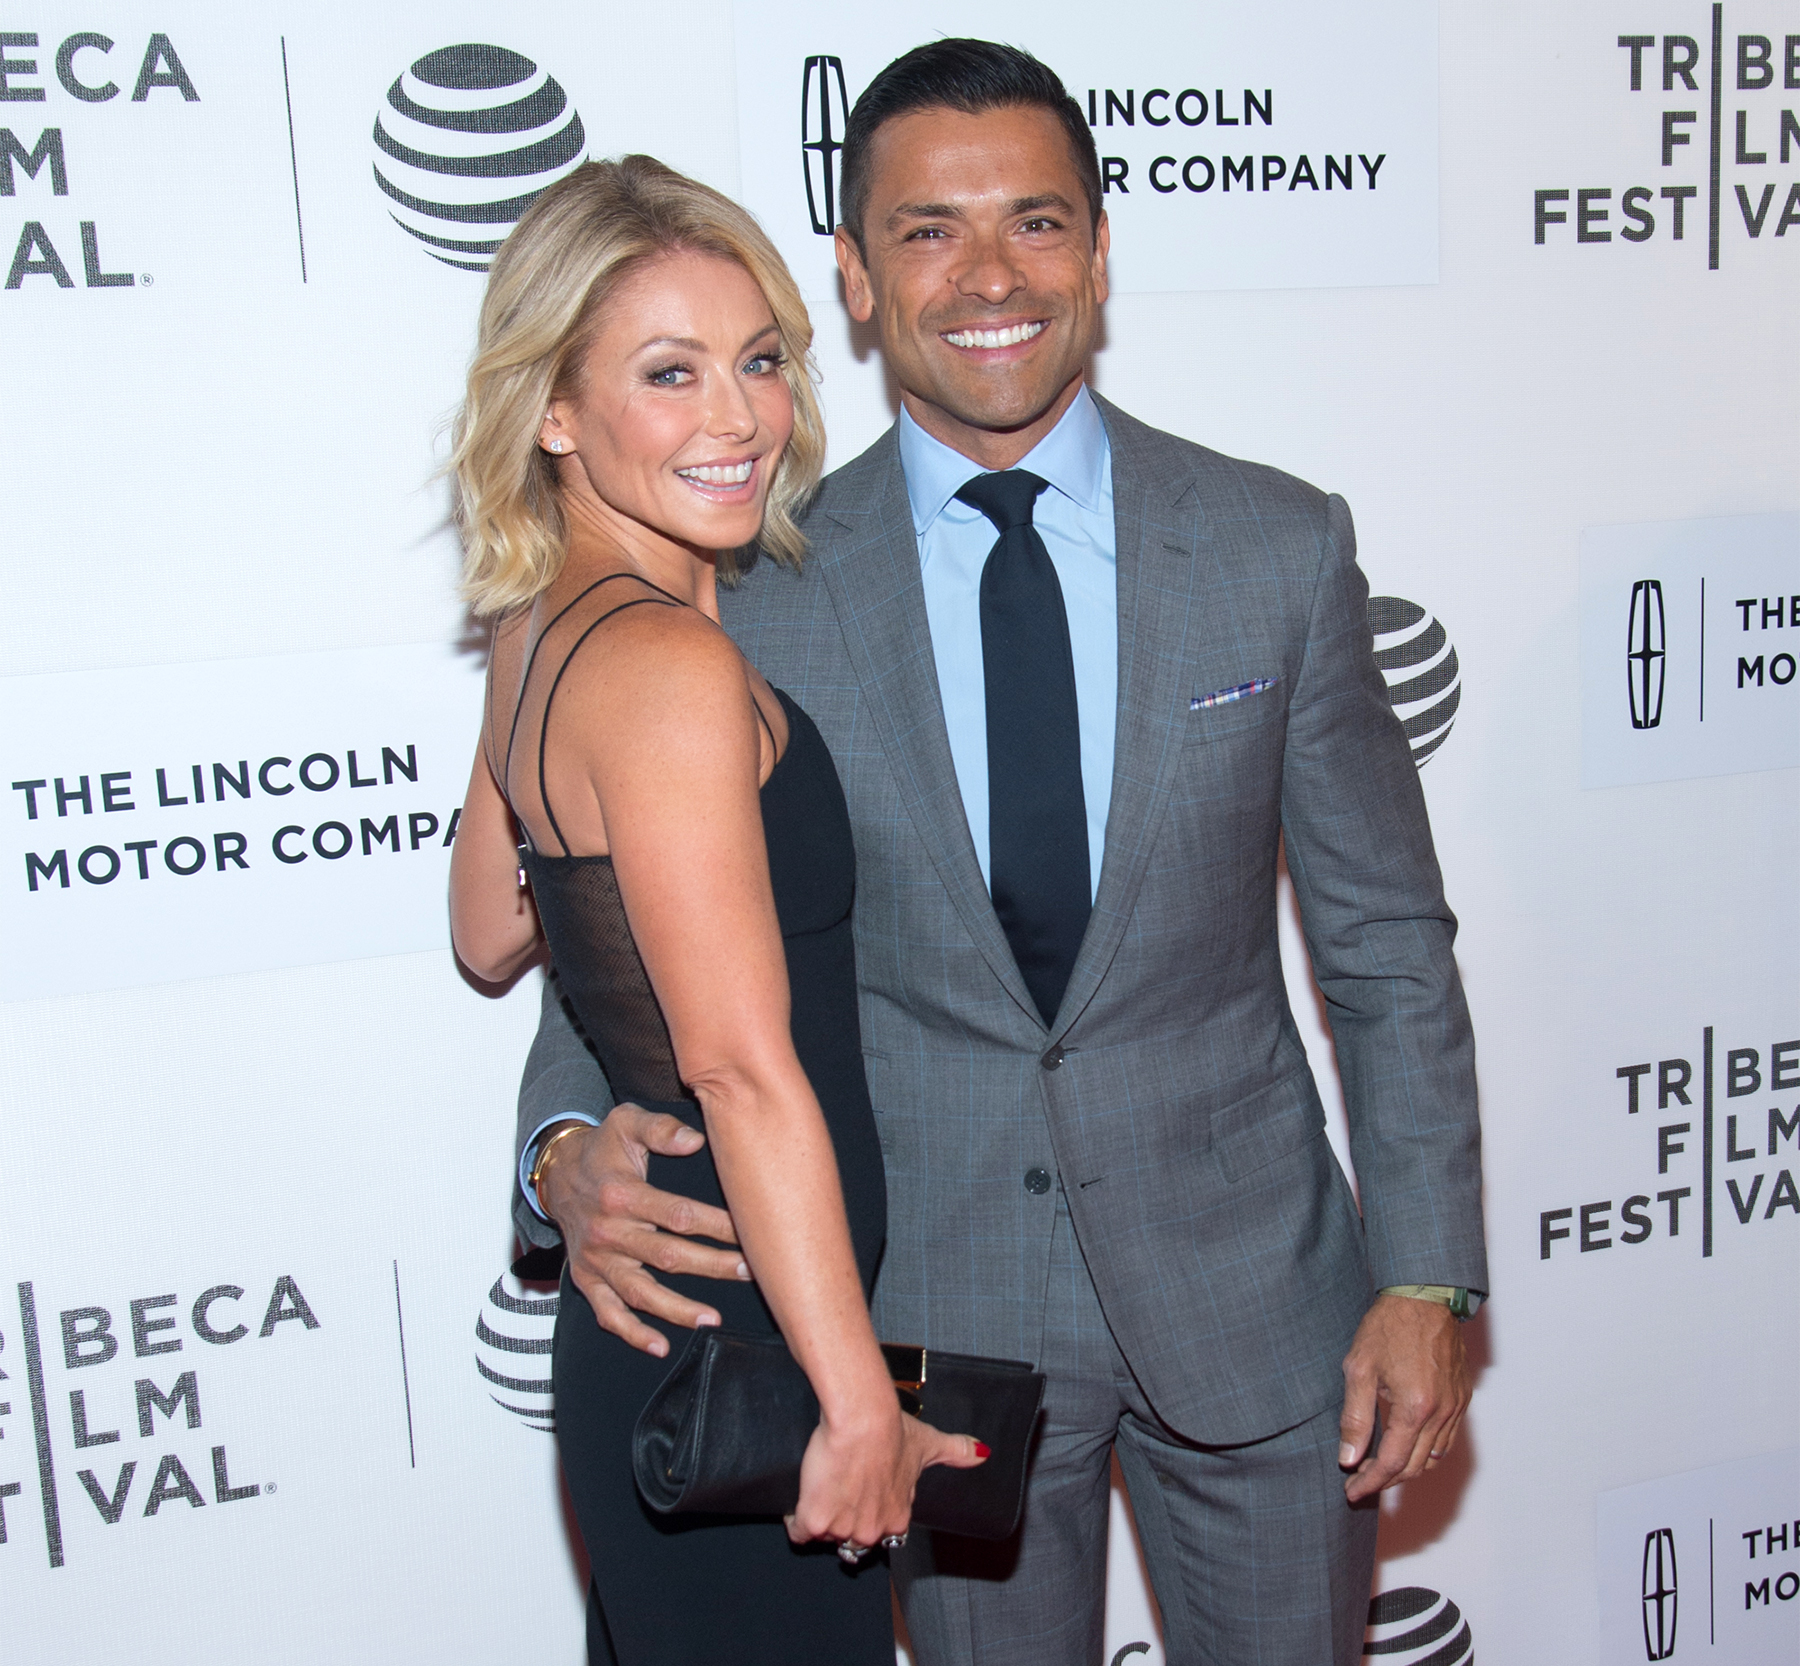 images The Smart Habit that Makes Kelly Ripa a Better Mom